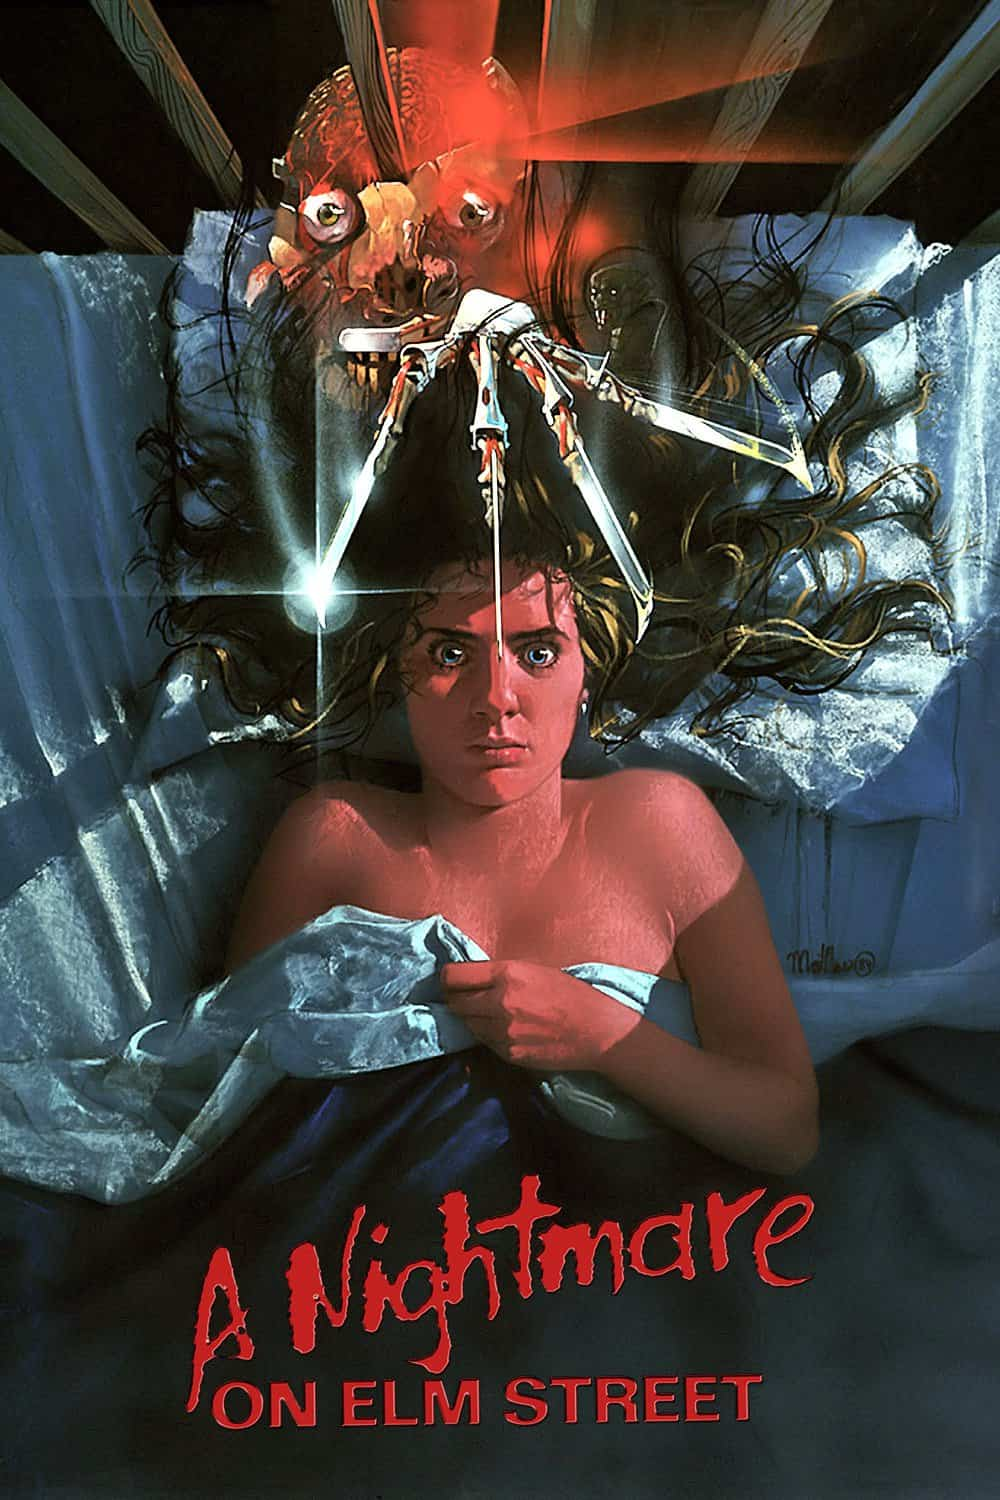 A Nightmare on Elm Street, 2010